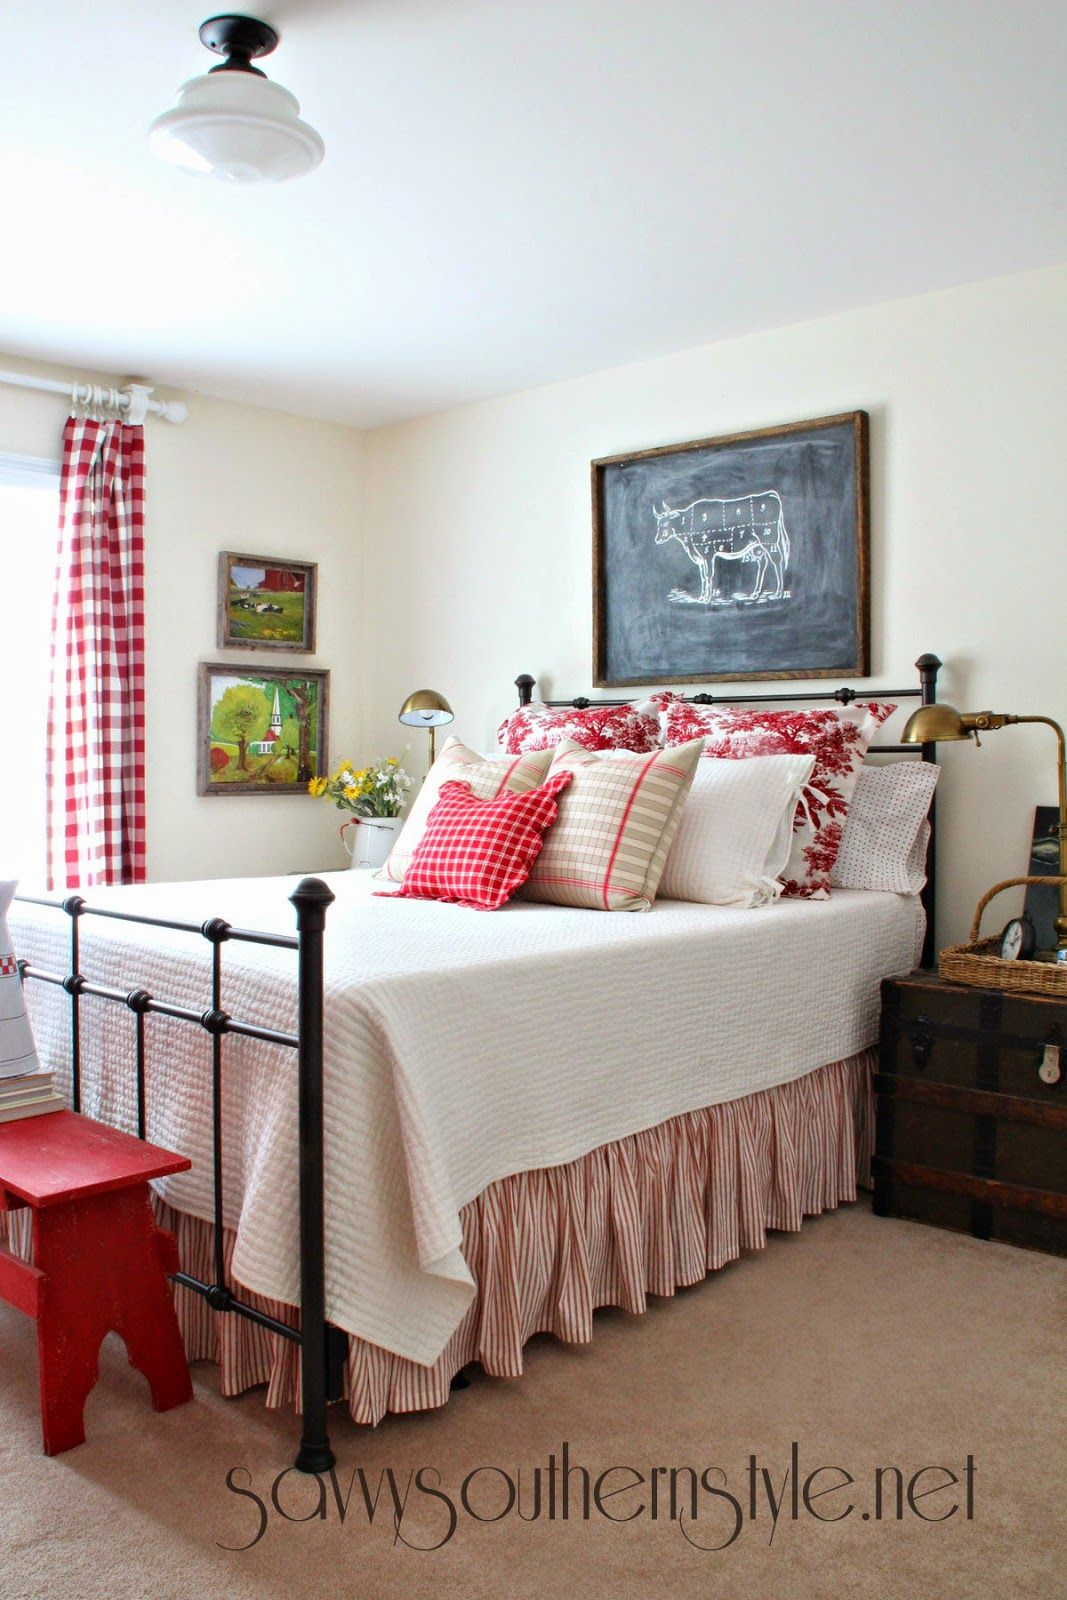 Mid Summer Farmhouse Style Guestroom Bedroom red, Home